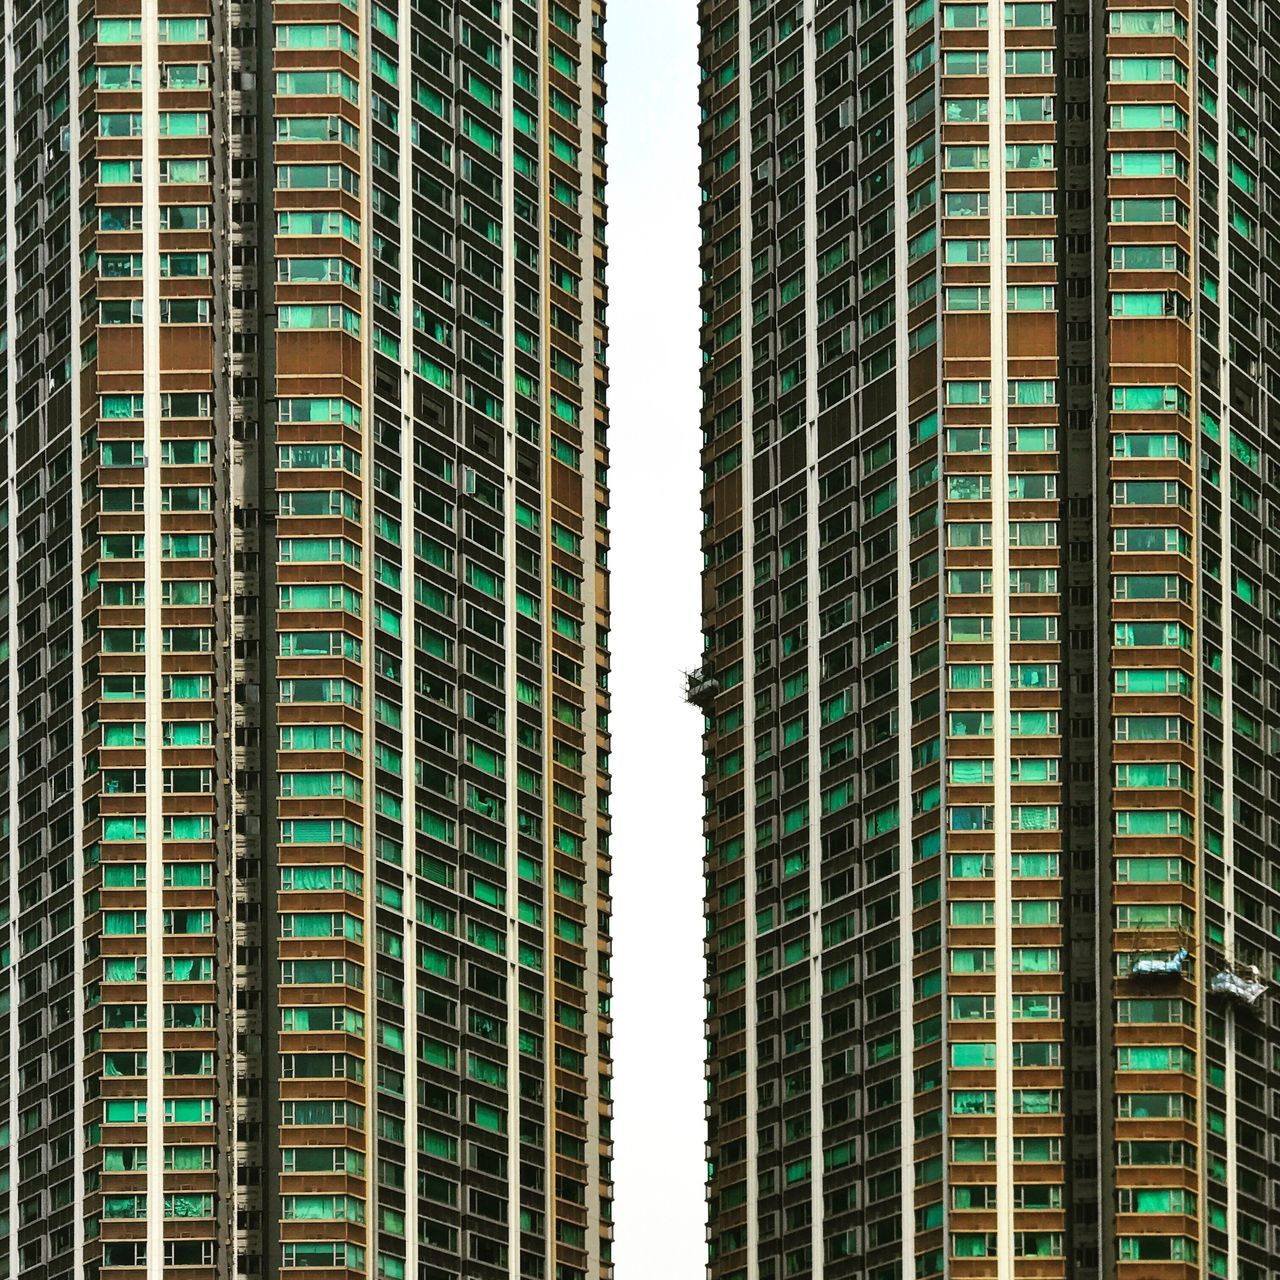 Skyscraper Building Exterior Architecture City No People Outdoors Day Residential Building Urban Geometry Dense Living Hong Kong Low Angle View Urban Lifestyle Facades City Life Urban Residential Structure